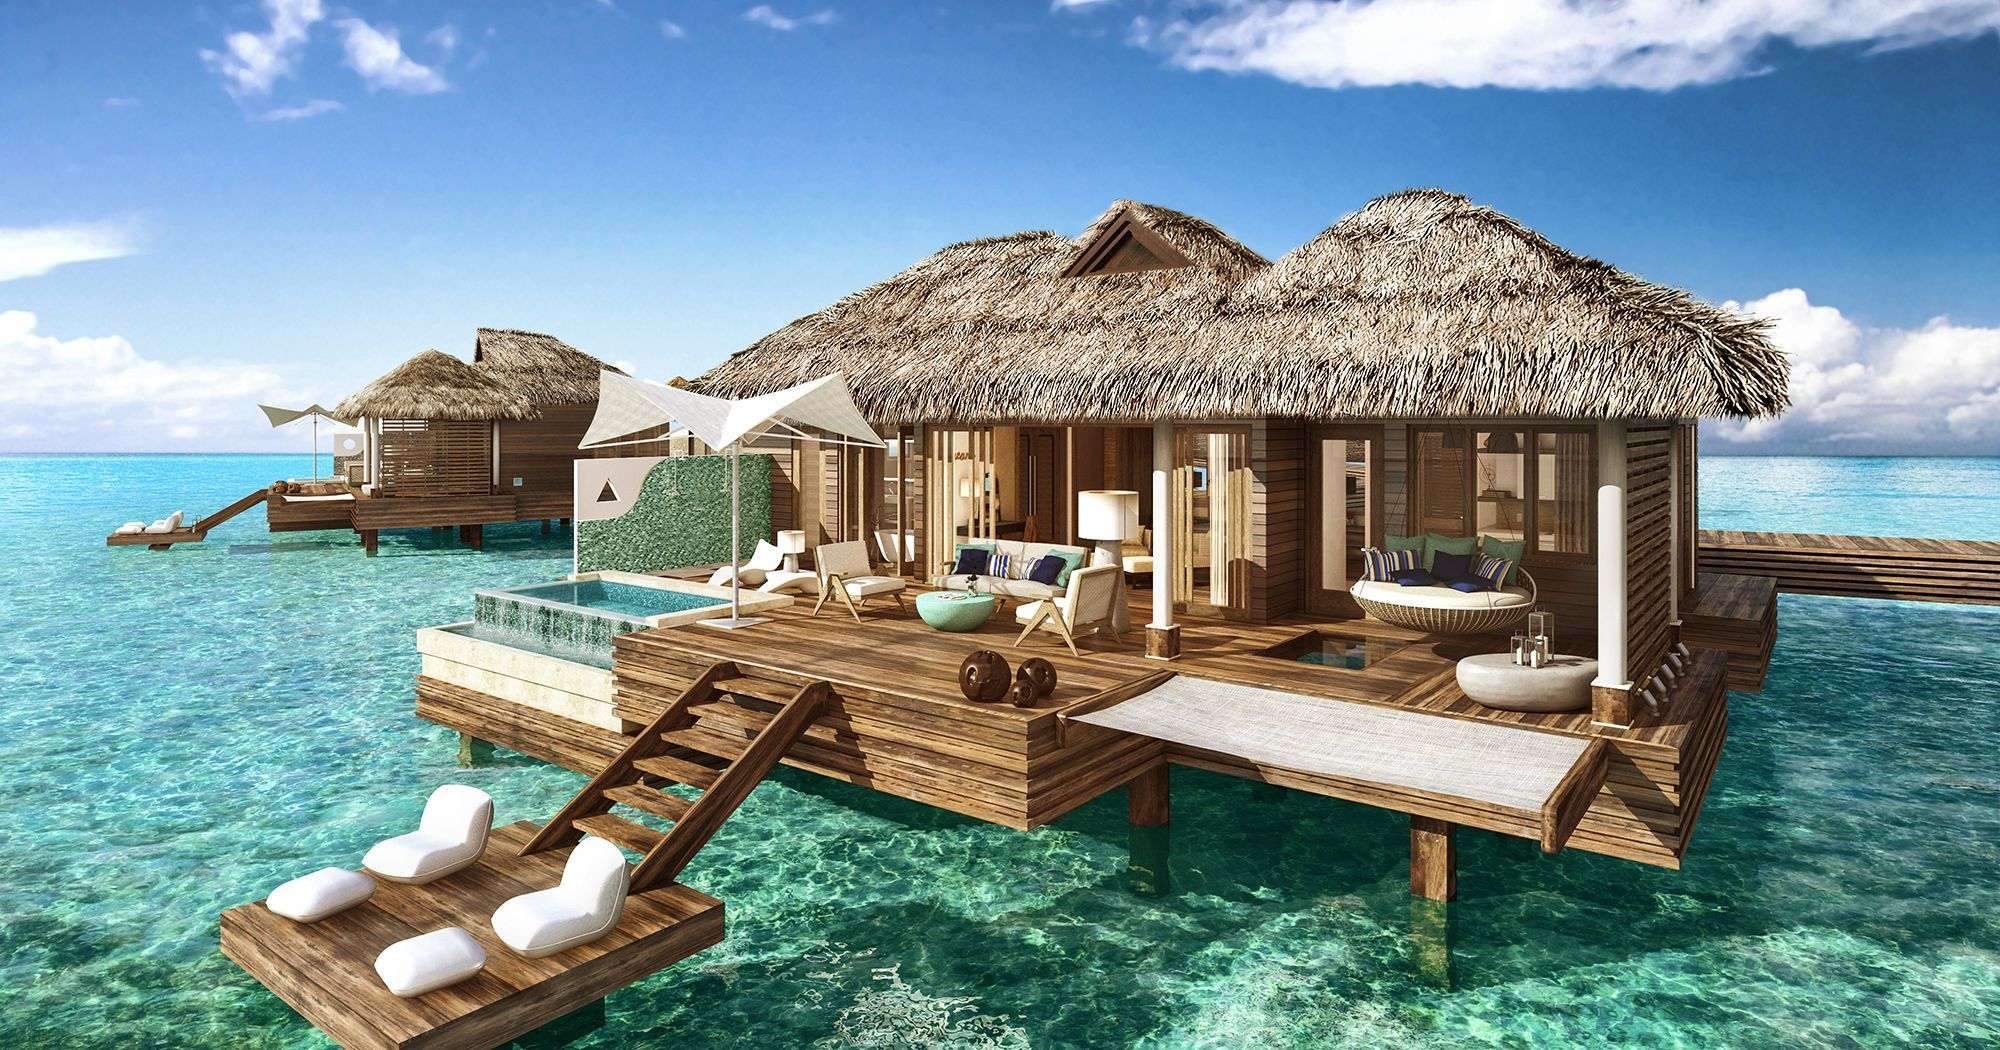 Imagine the most over-the-top hotel you've ever seen, and then multiply it by 100. That's what you'll find at Sandals' just announced foray into the luxury all-inclusive space.  The Over-The-Water Suites at Sandals Royal Caribbean in Montego Bay, Jamaica, are a group of five incredible